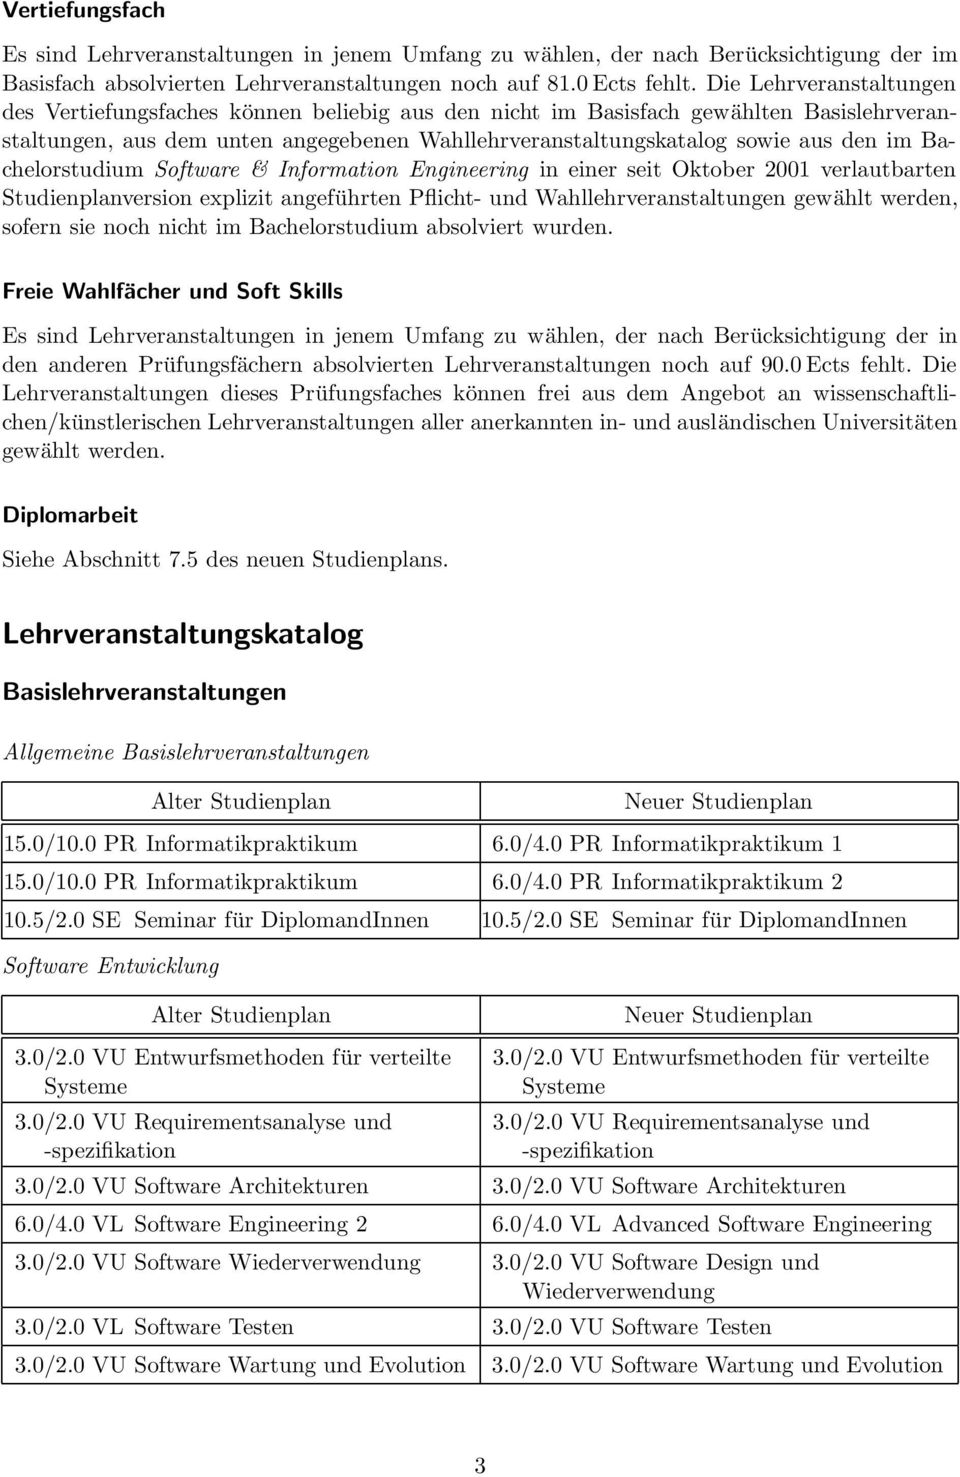 Bachelorstudium Software & Information Engineering in einer seit Oktober 2001 verlautbarten Studienplanversion explizit angeführten Pflicht- und Wahllehrveranstaltungen gewählt werden, sofern sie